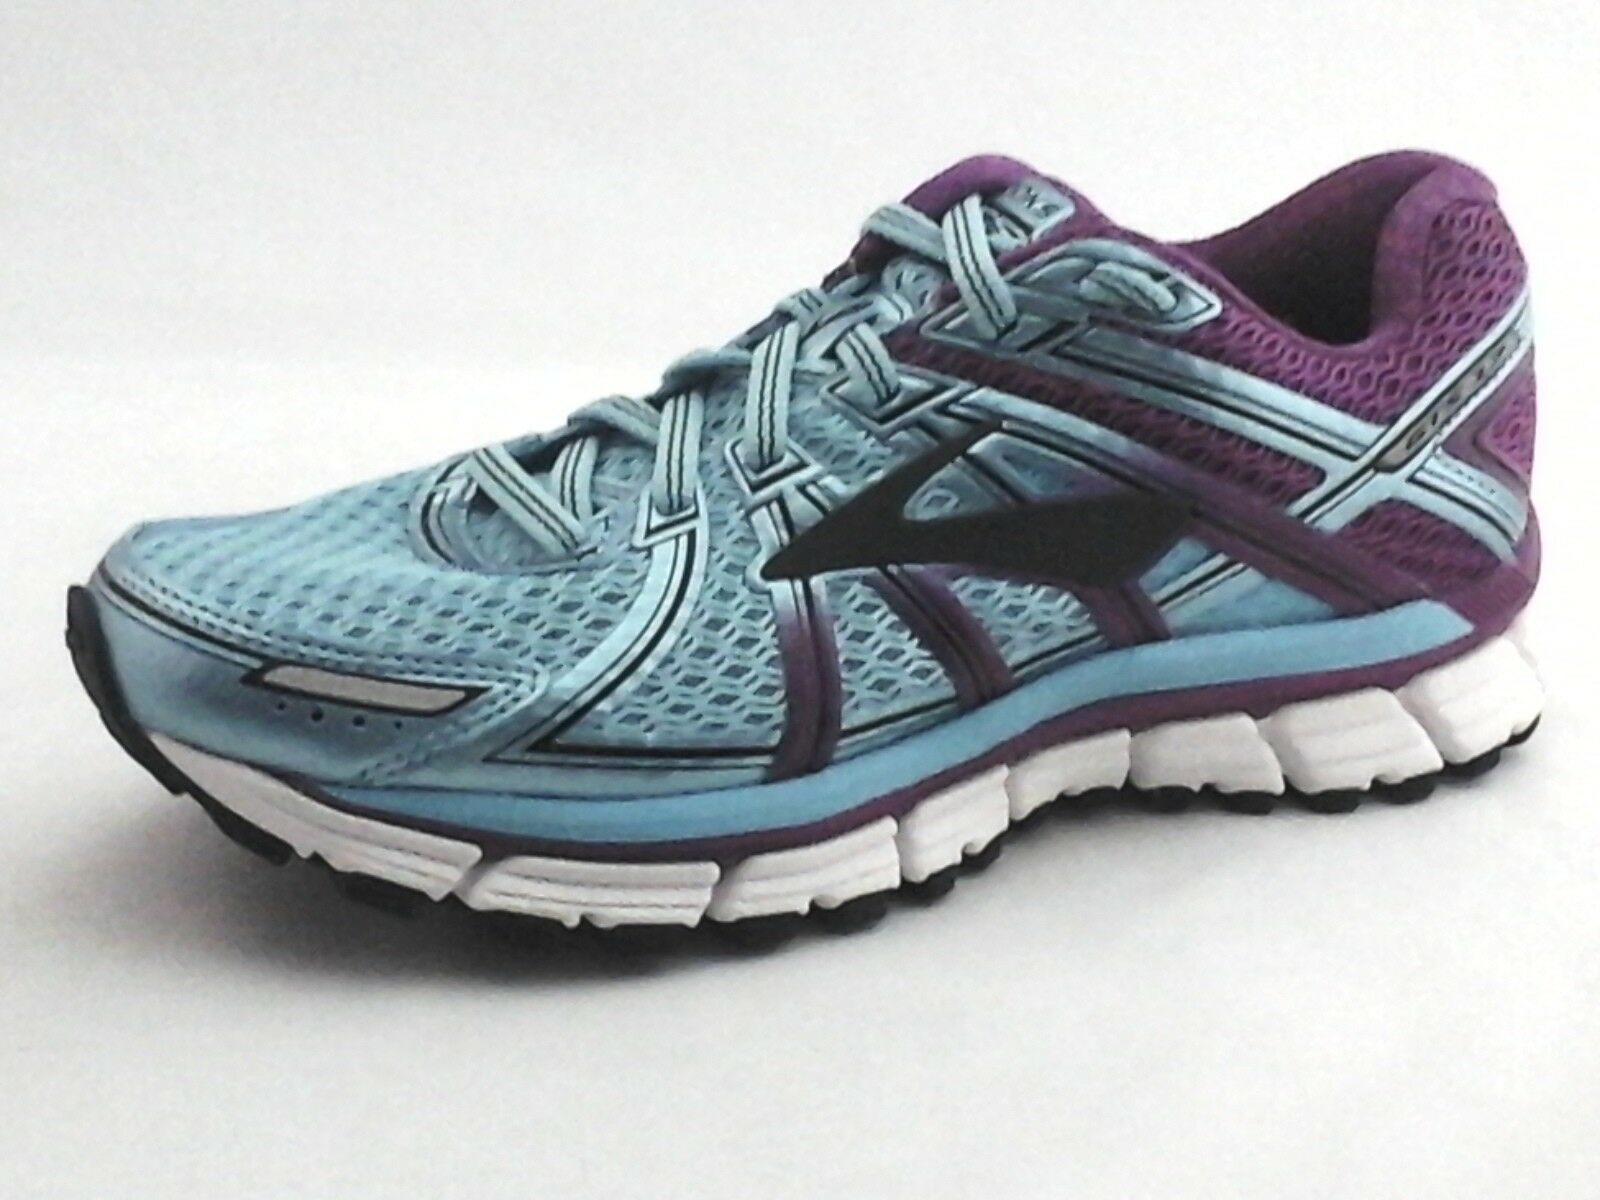 BROOKS Adrenaline GTS 17 Running shoes Aqua bluee Purple Womens US 5.5  130 New